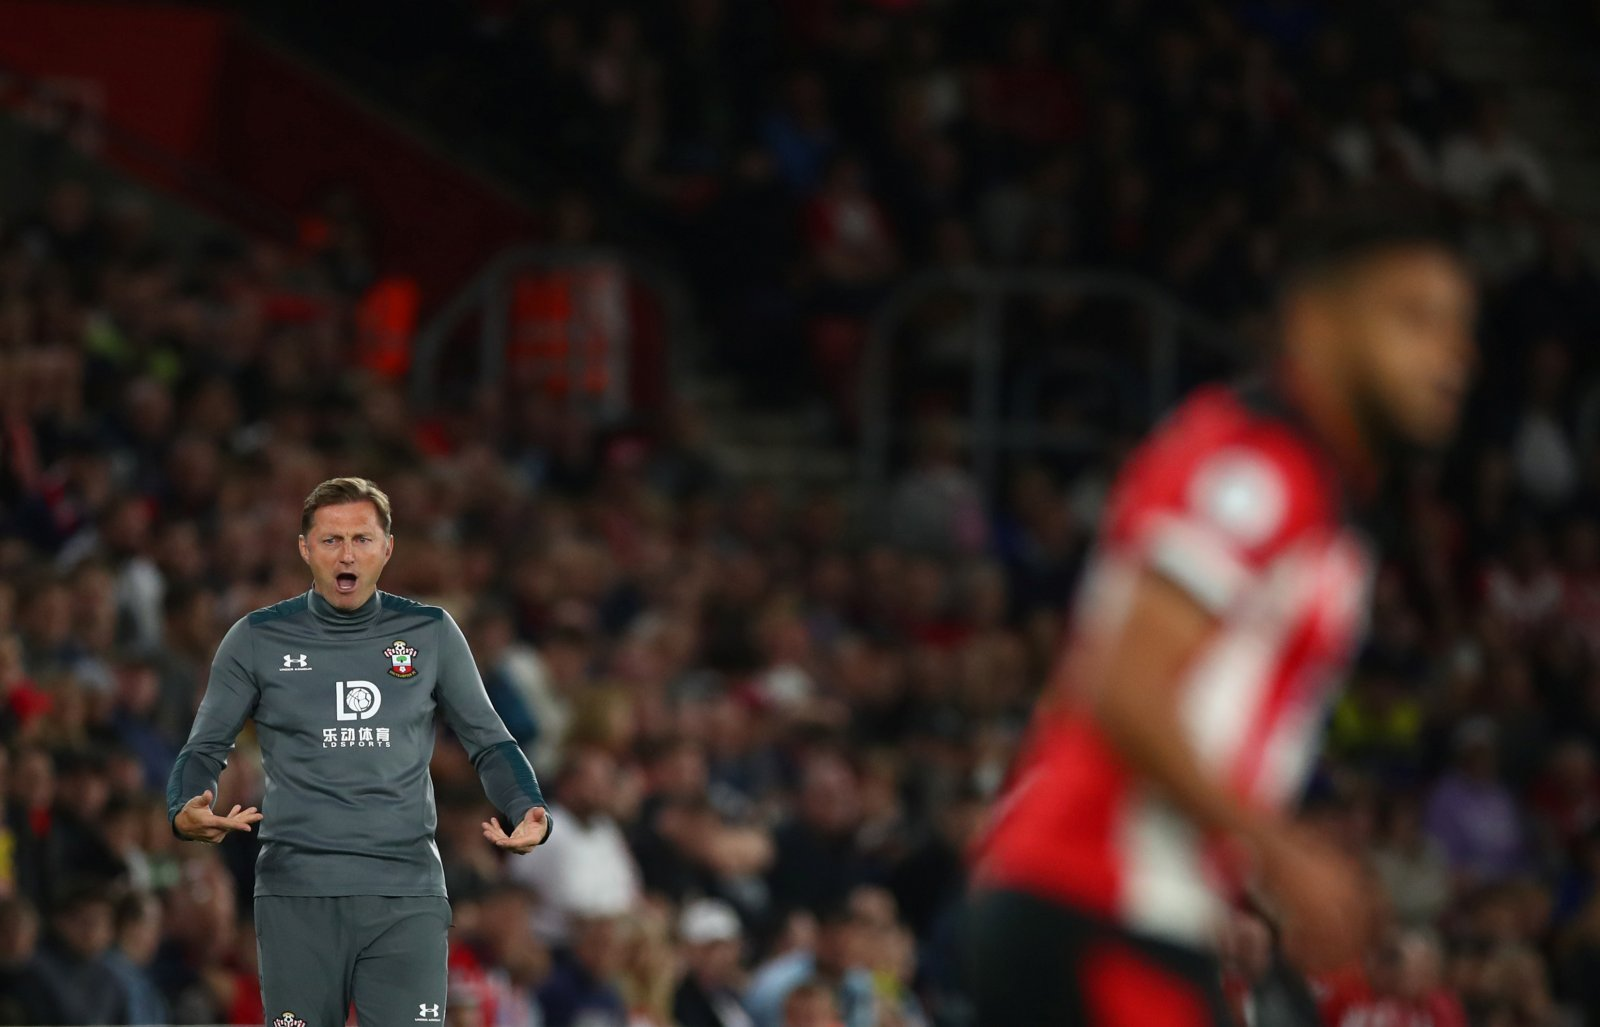 Southampton: Charlie Nicholas gives verdict on Ralph Hasenhuttl as he prepares to take on Manchester City